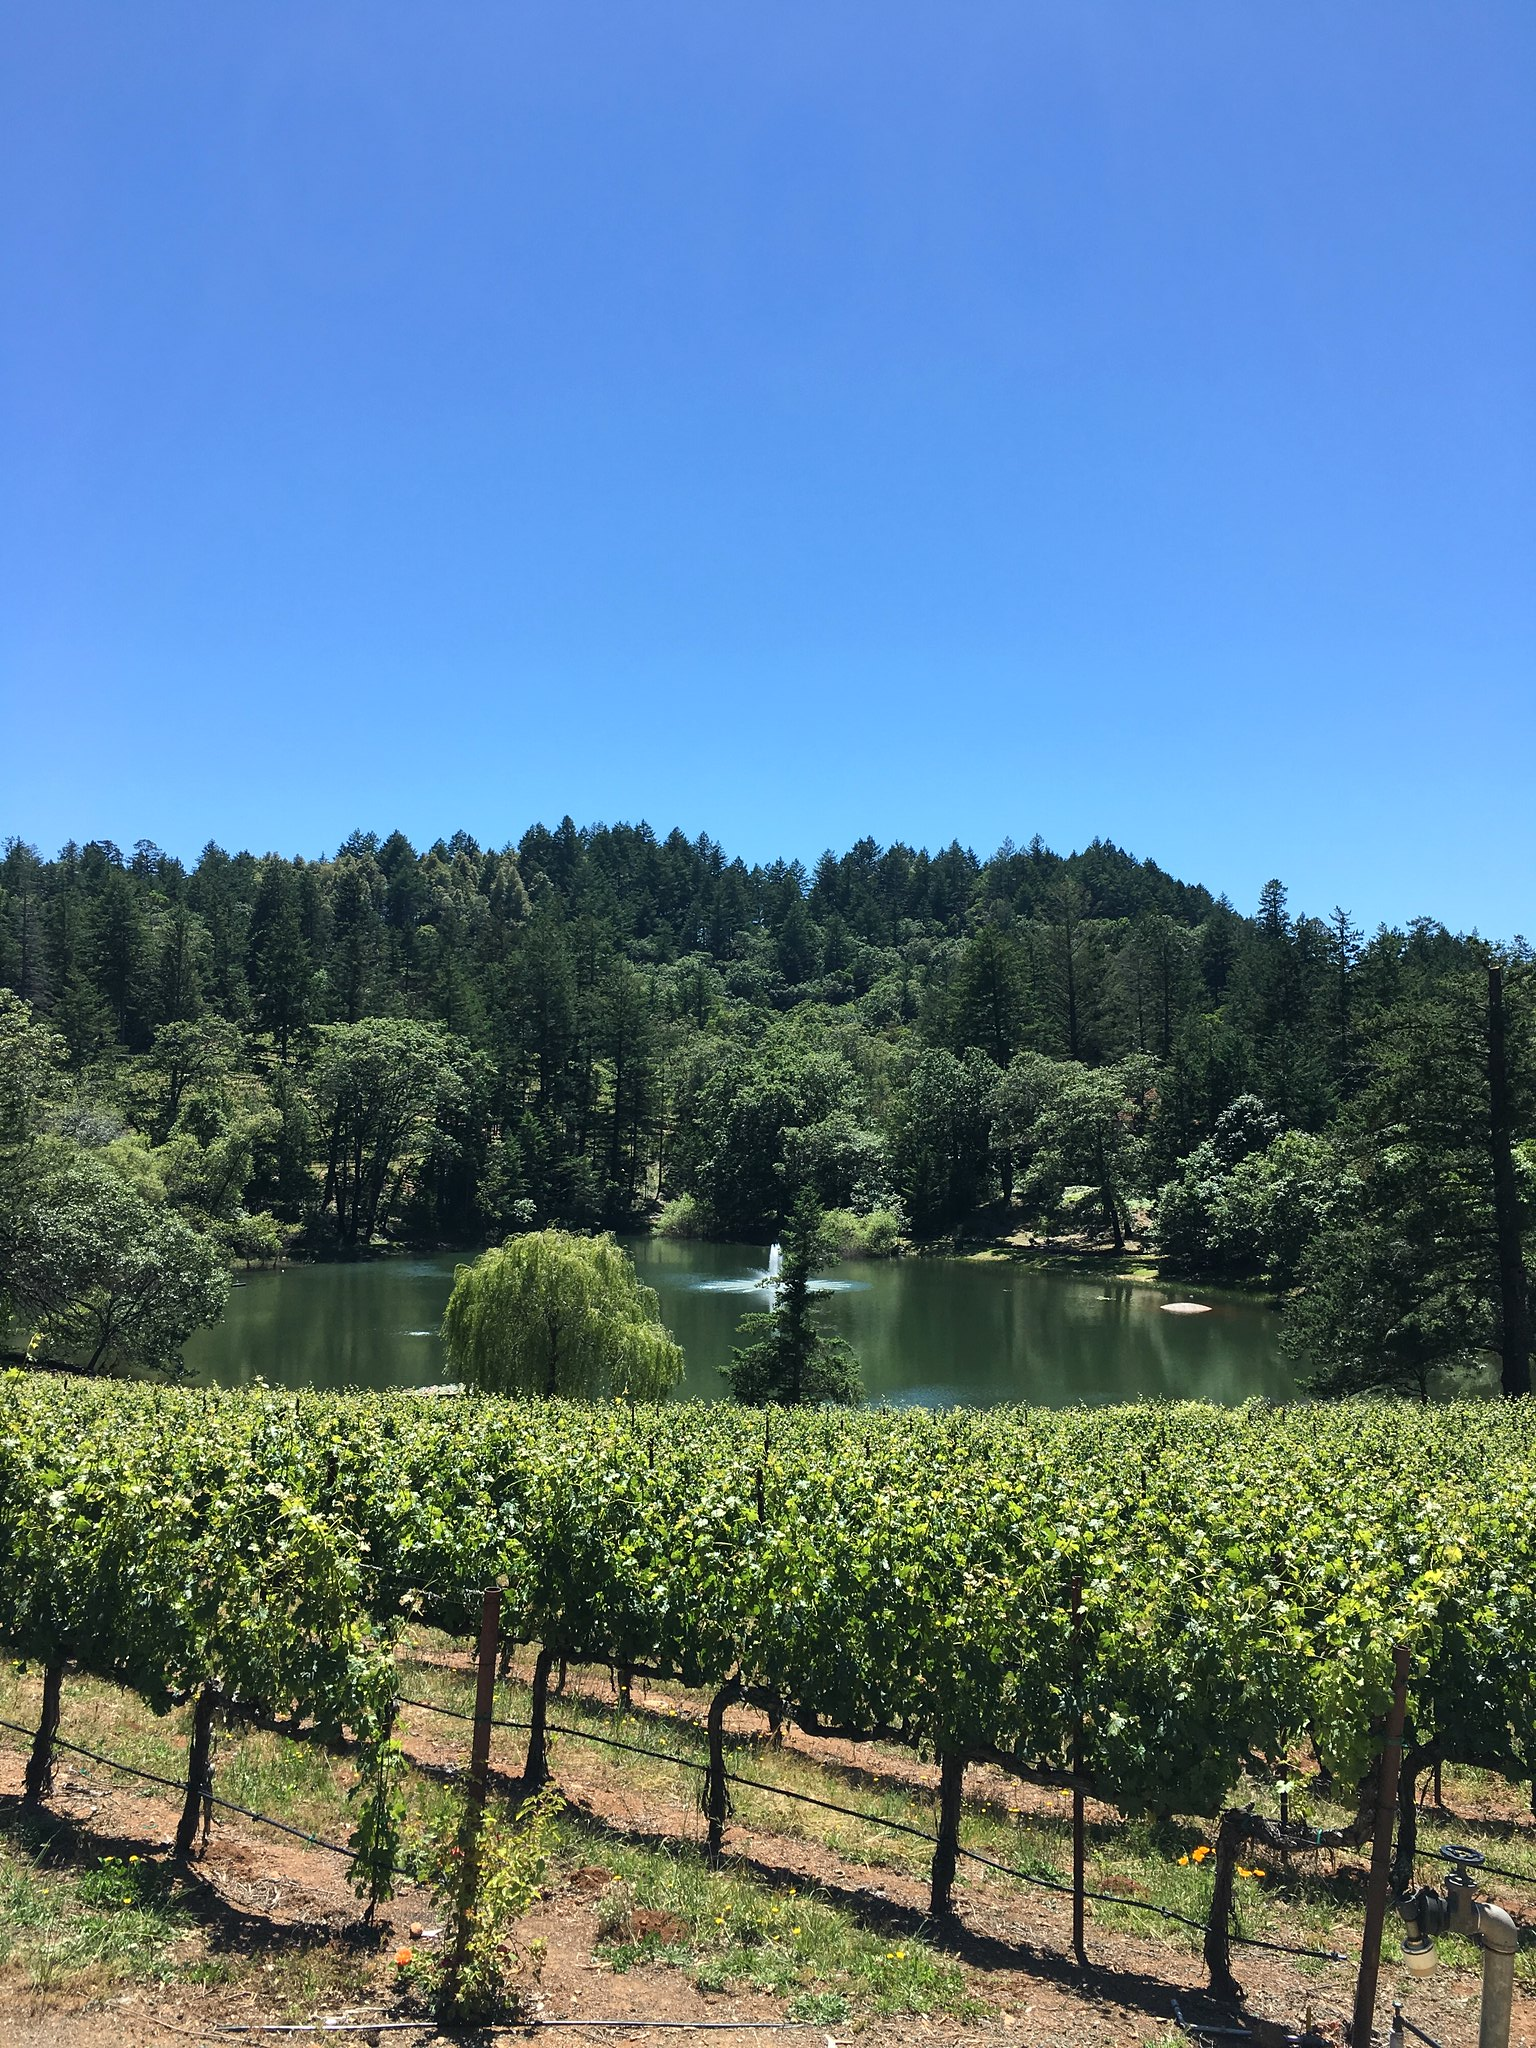 simplyxclassic, miriam gin, where to stay in napa, what to do in napa california, travel blogger, mommy, lifestyle, fashion blogger, orange county, sonoma, napa valley, solage calistoga